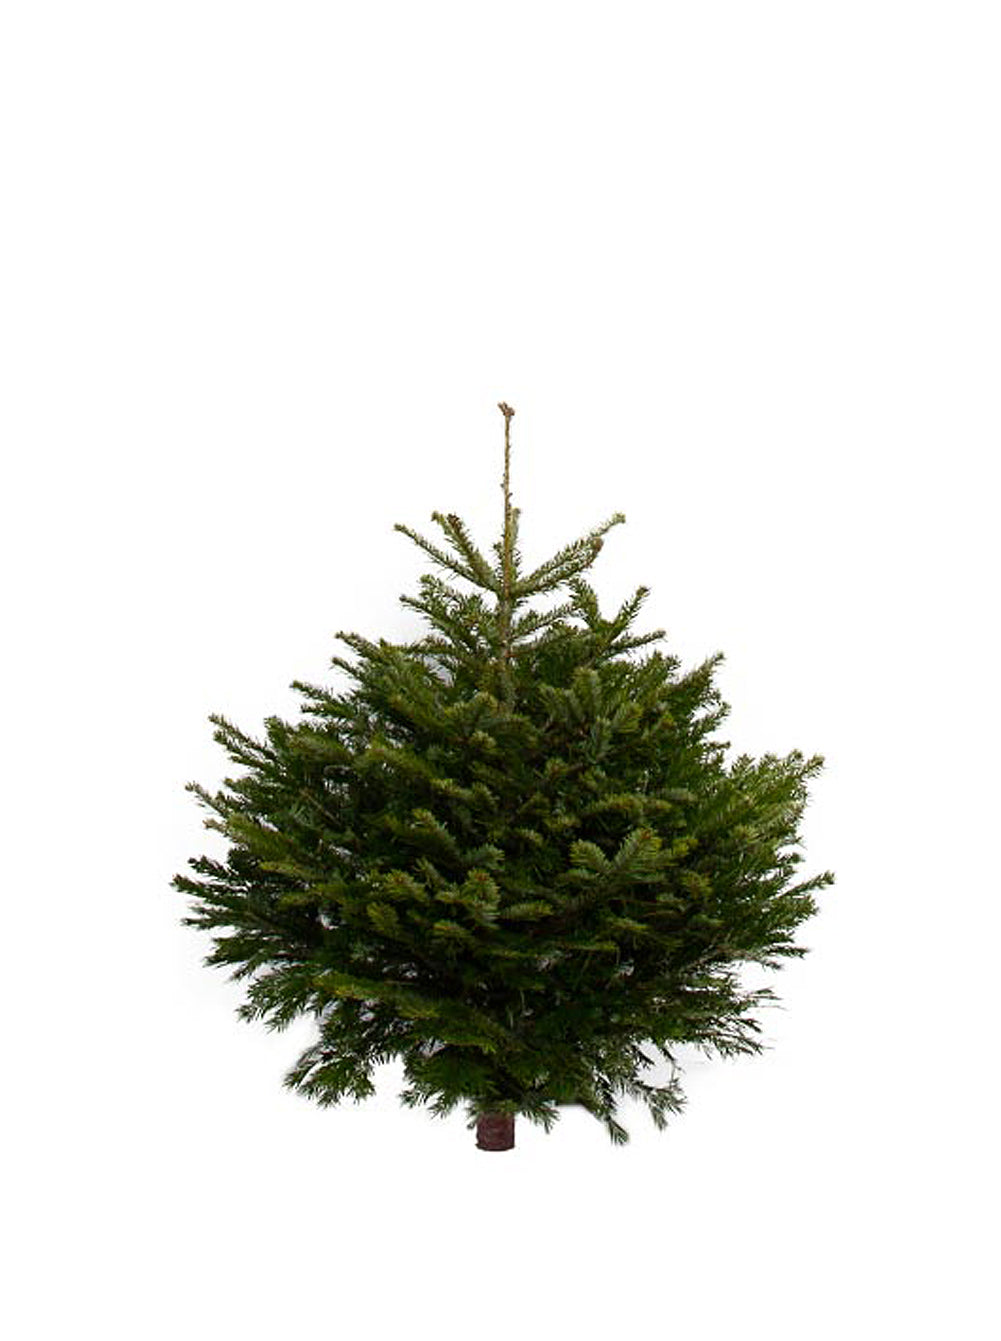 3ft Nordmann Fir Christmas Tree from Pines and Needles